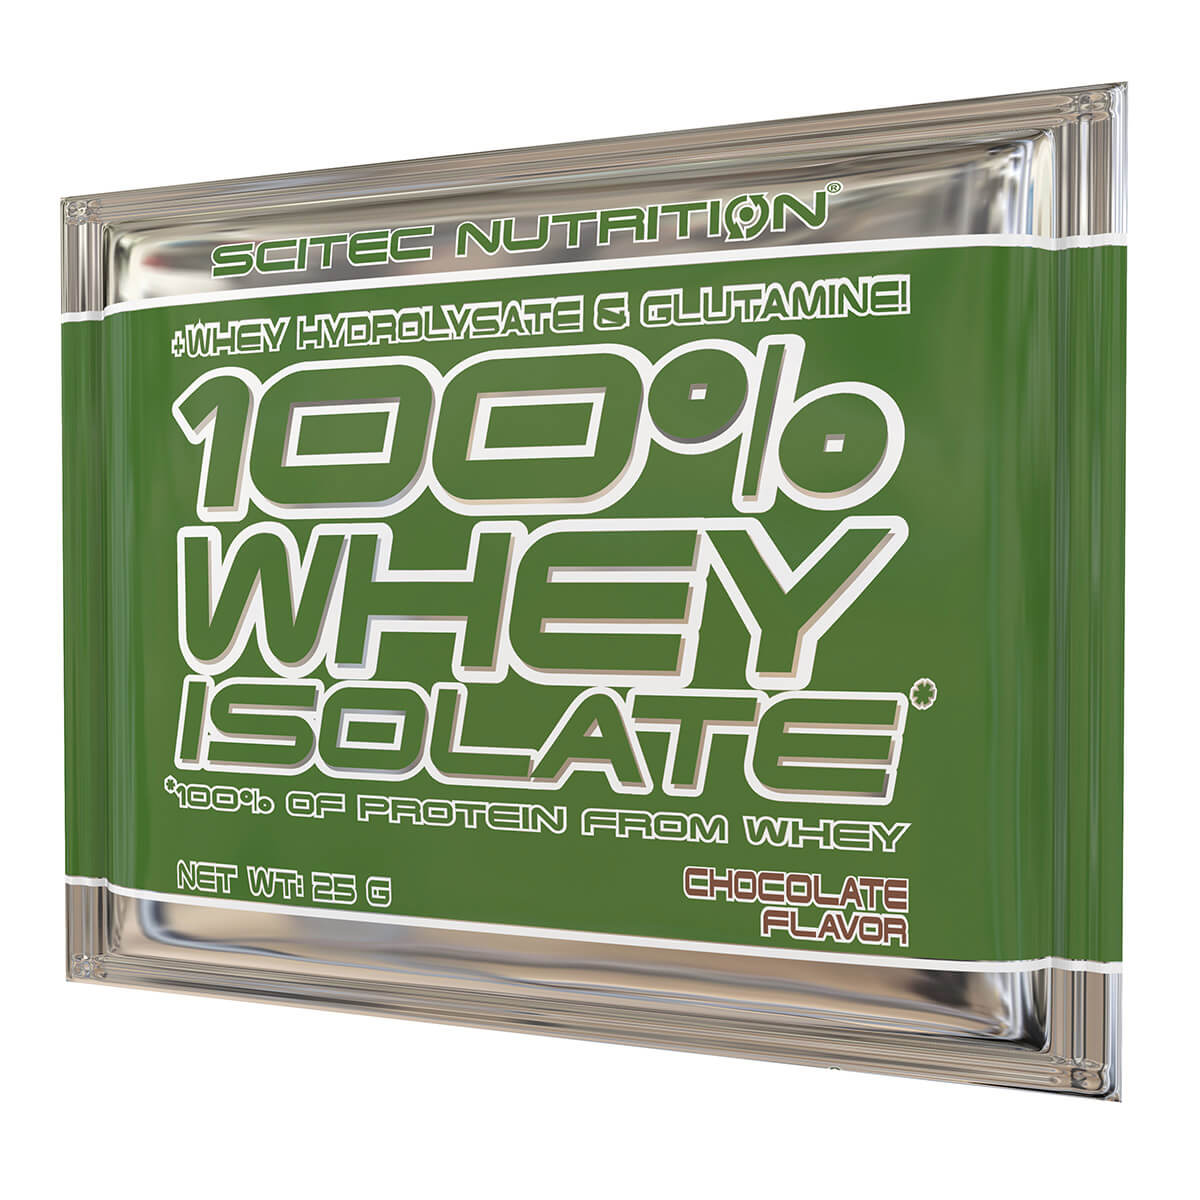 100% Whey Isolate, 25g tasak